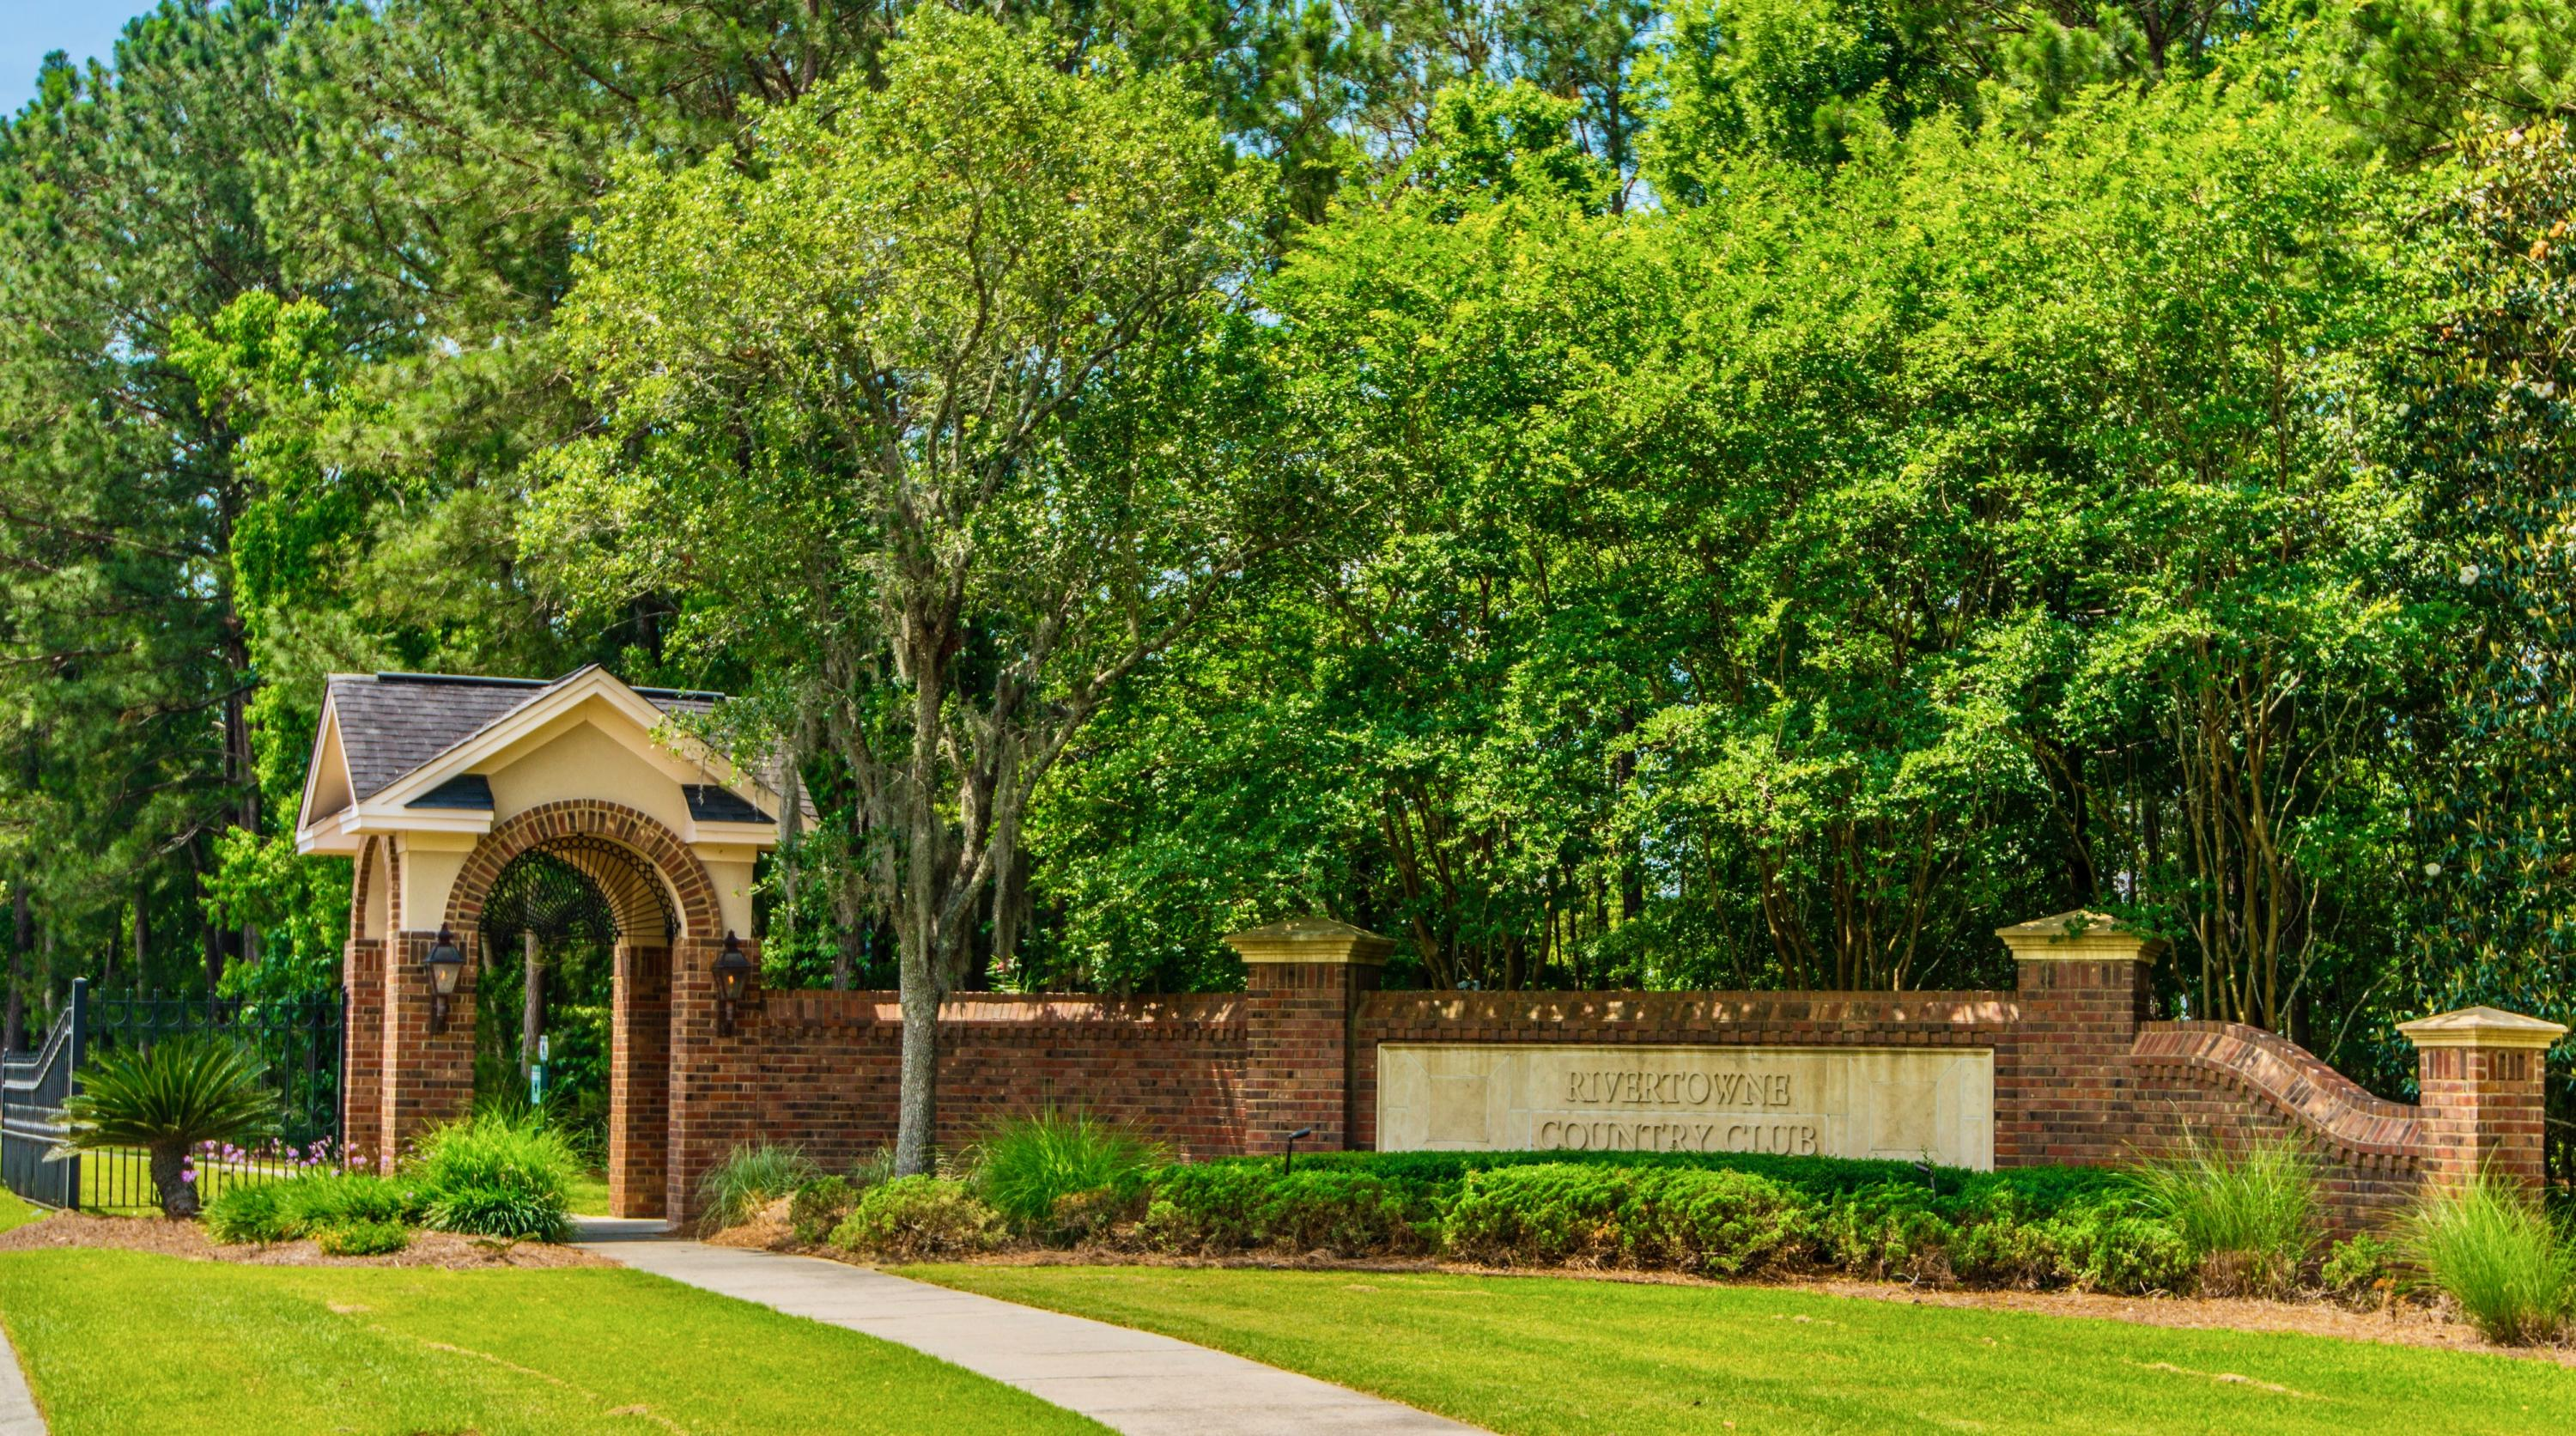 Rivertowne Country Club Homes For Sale - 1544 Rivertowne Country Club, Mount Pleasant, SC - 39